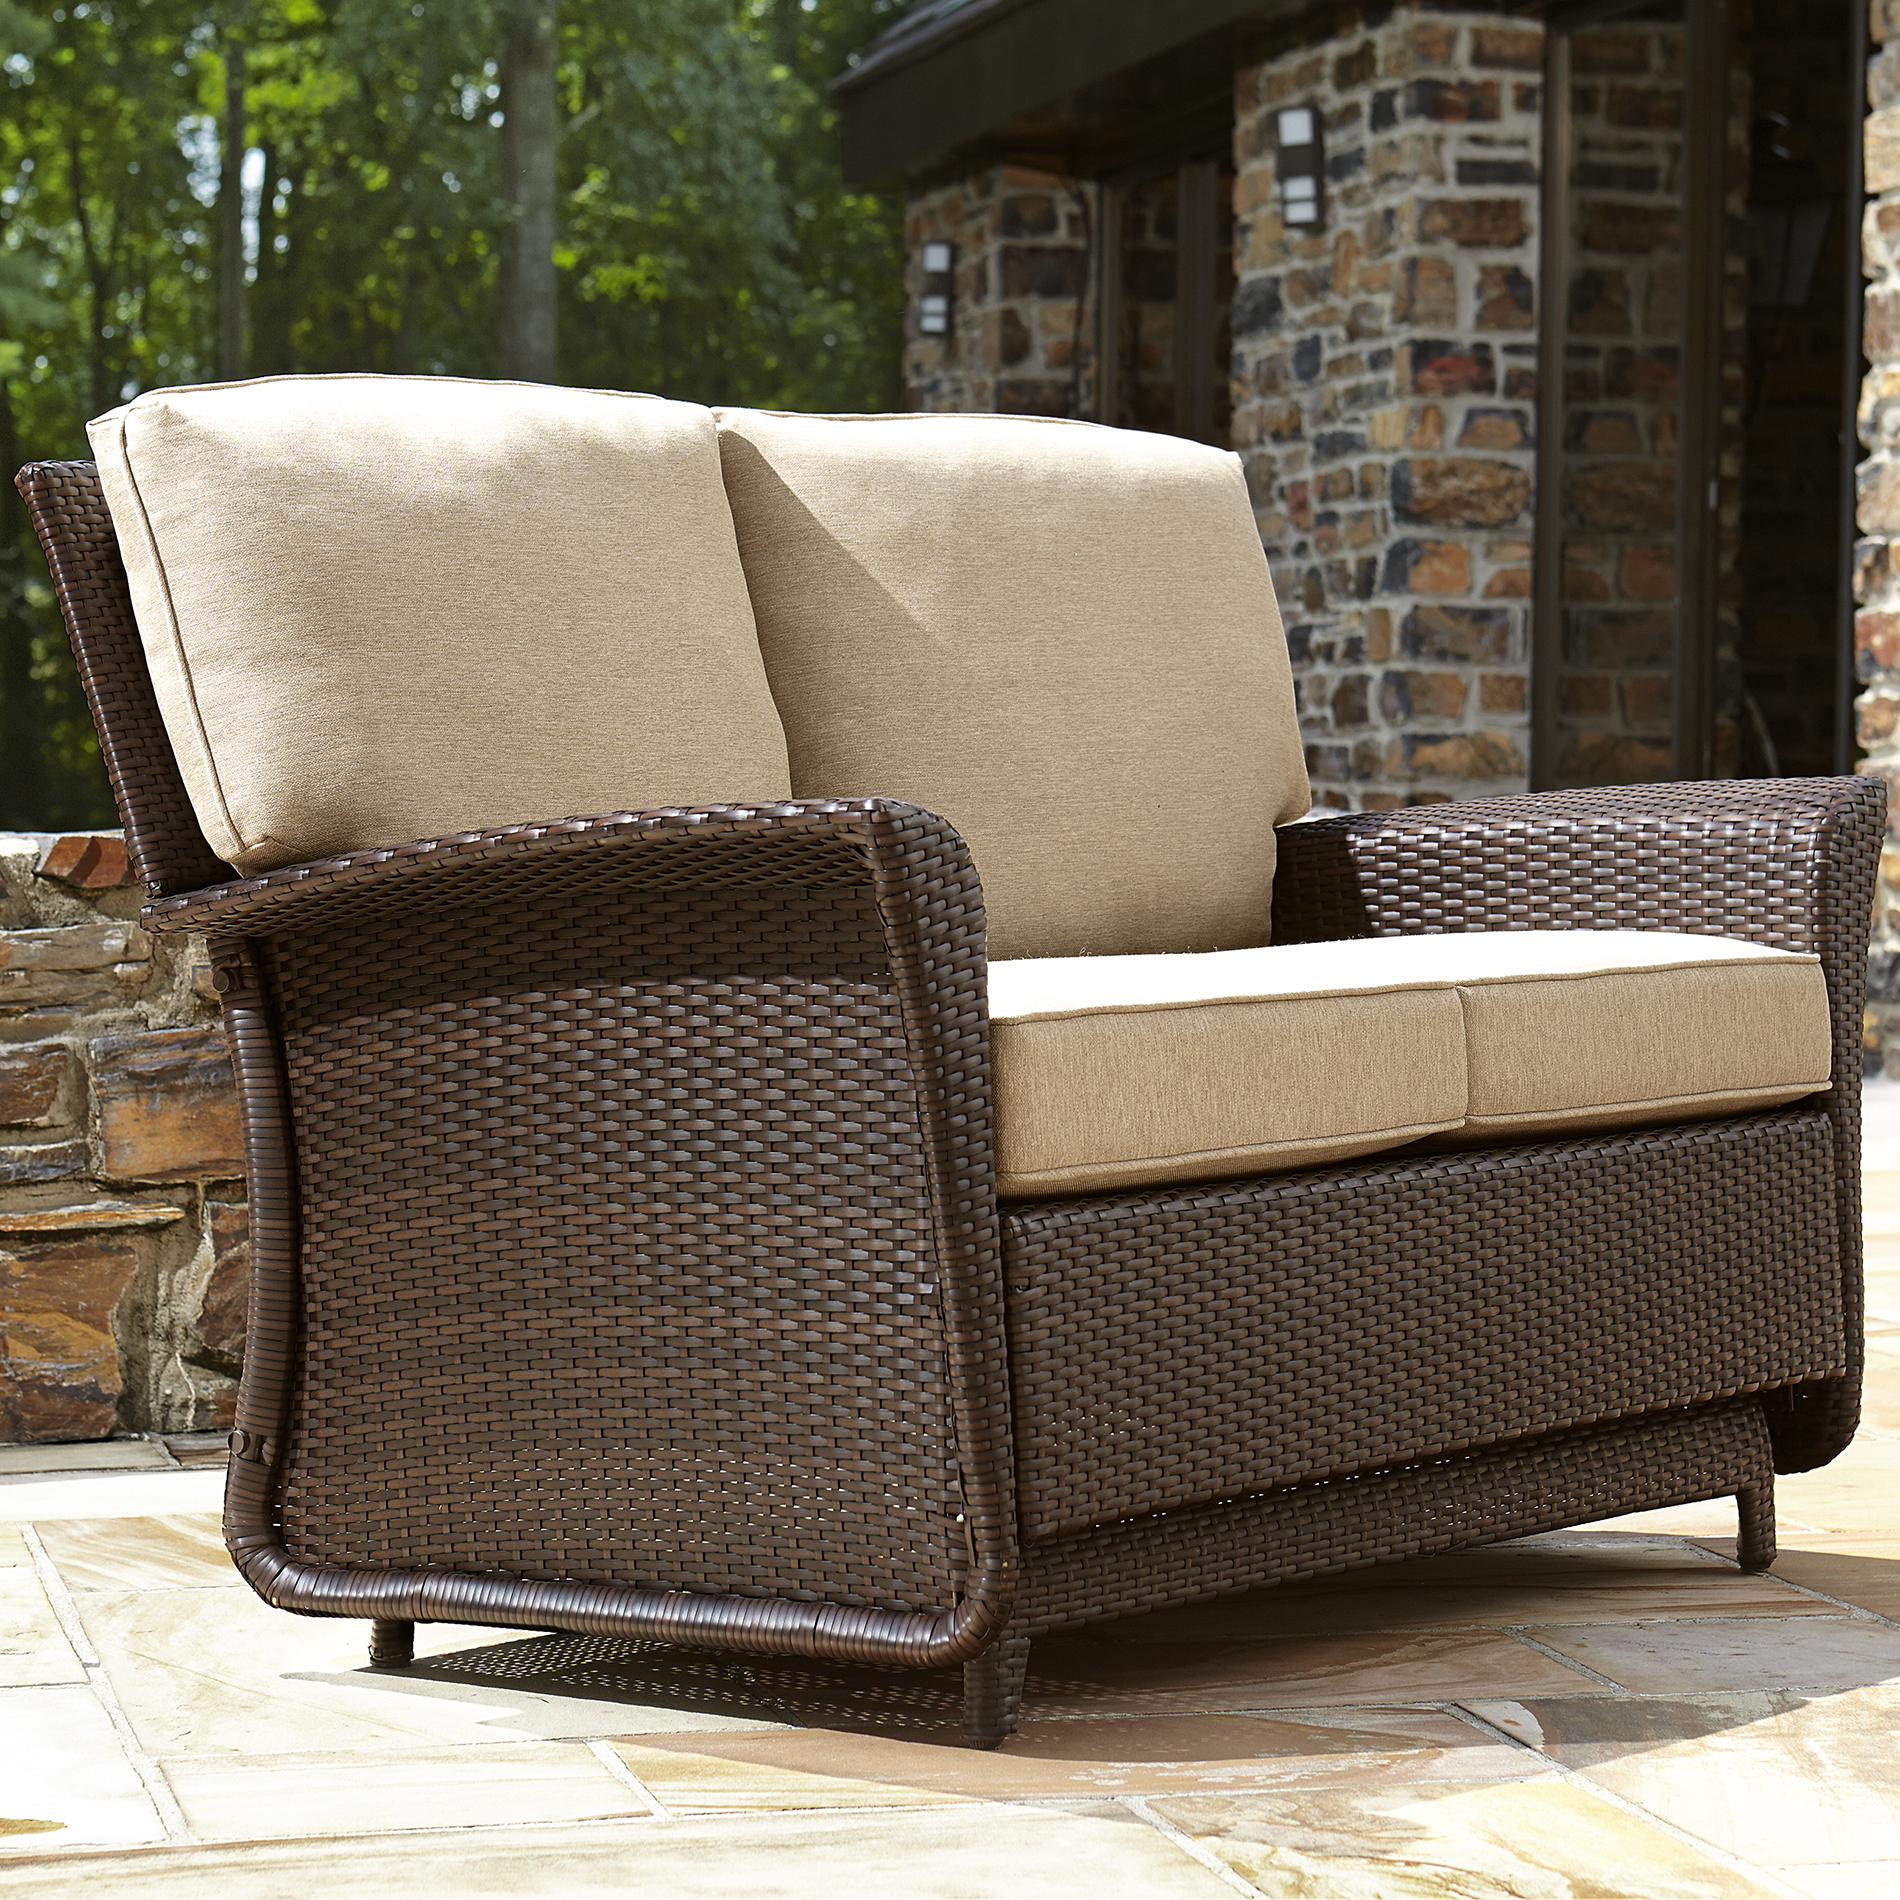 Glider Patio Chairs Ty Pennington Style Parkside Double Glider Limited